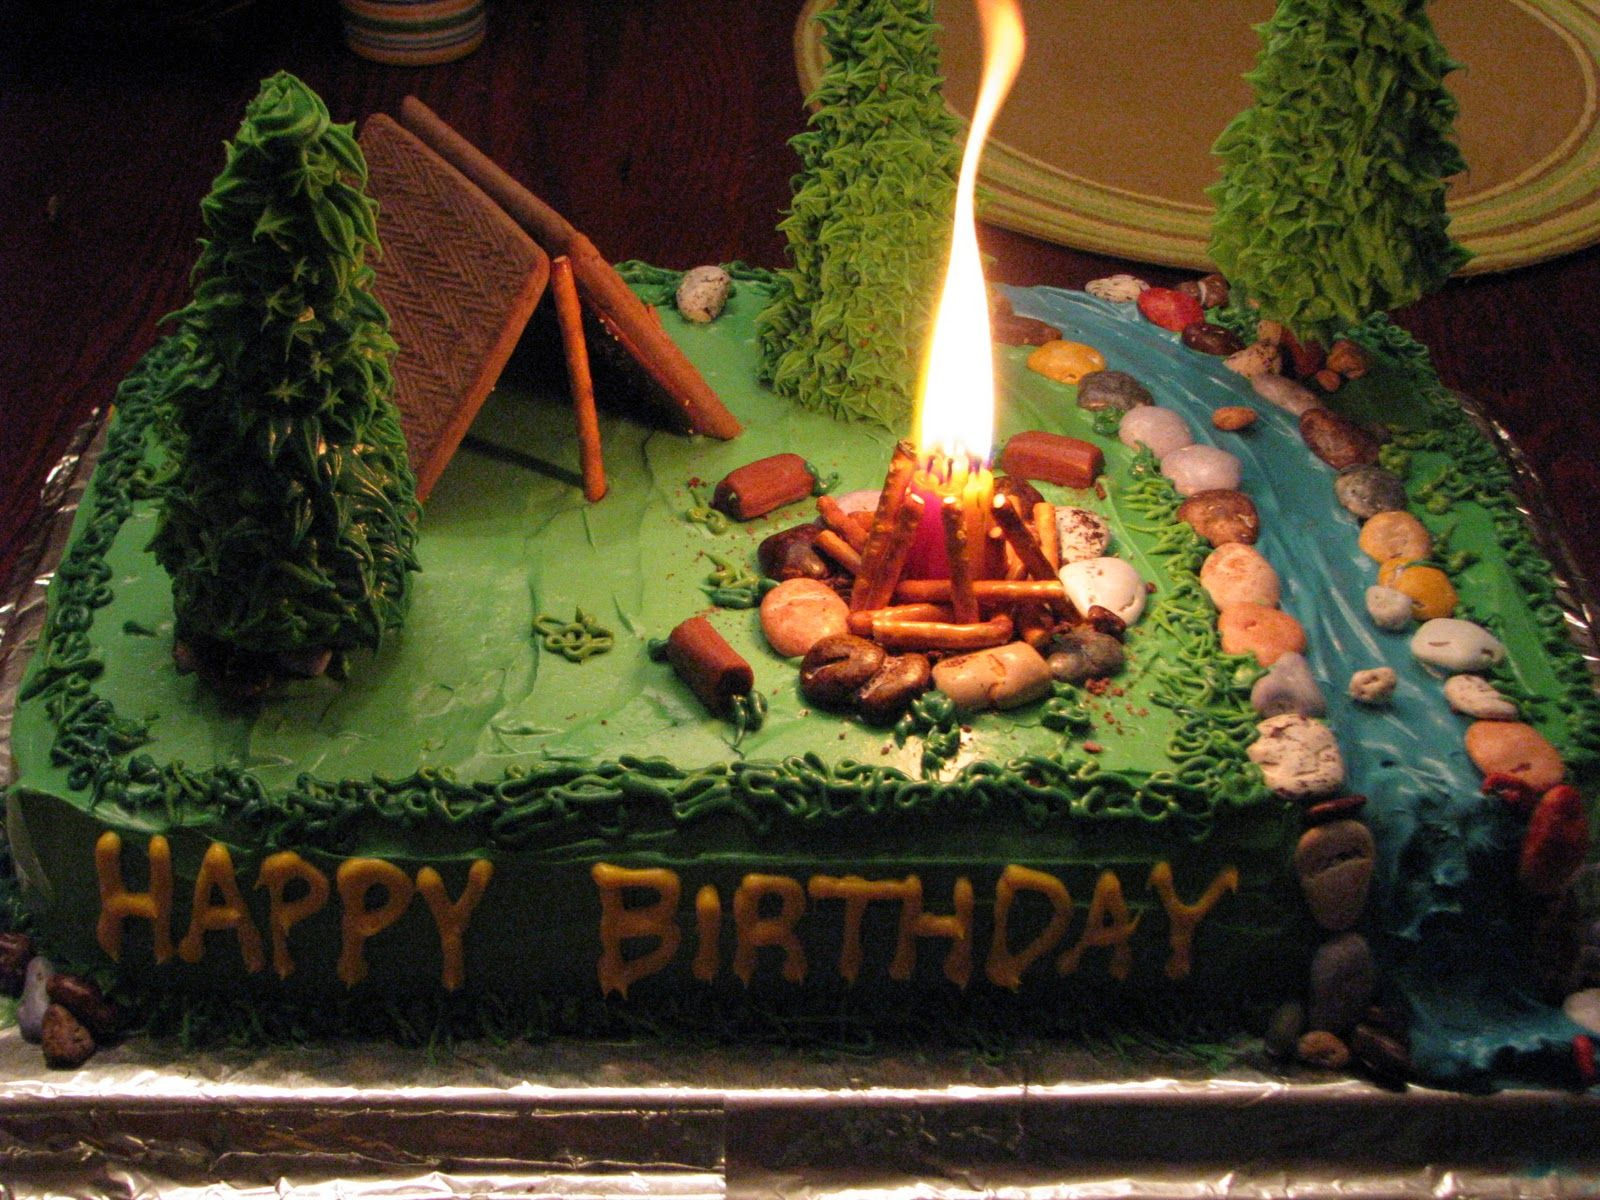 Amazing Camping Cake So Cool Wefollowpics Camping Cakes Camping Funny Birthday Cards Online Bapapcheapnameinfo